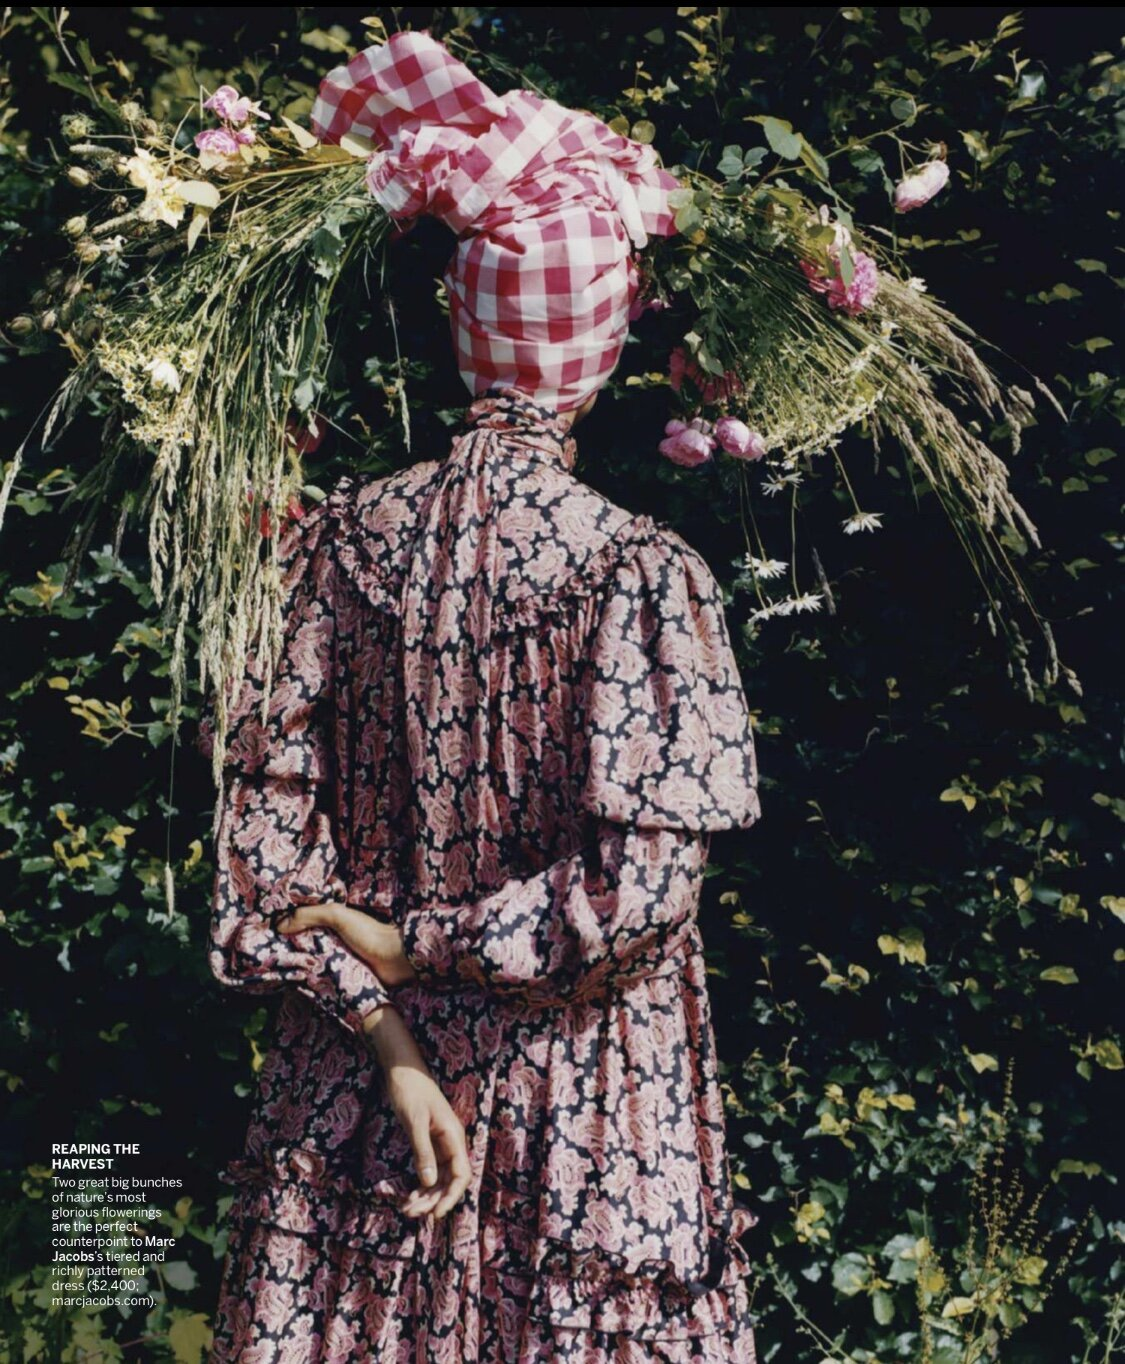 Imaan Hannam by Tyler Mitchell in Blooming Anew for Vogue US Sept 2019 (1).jpg